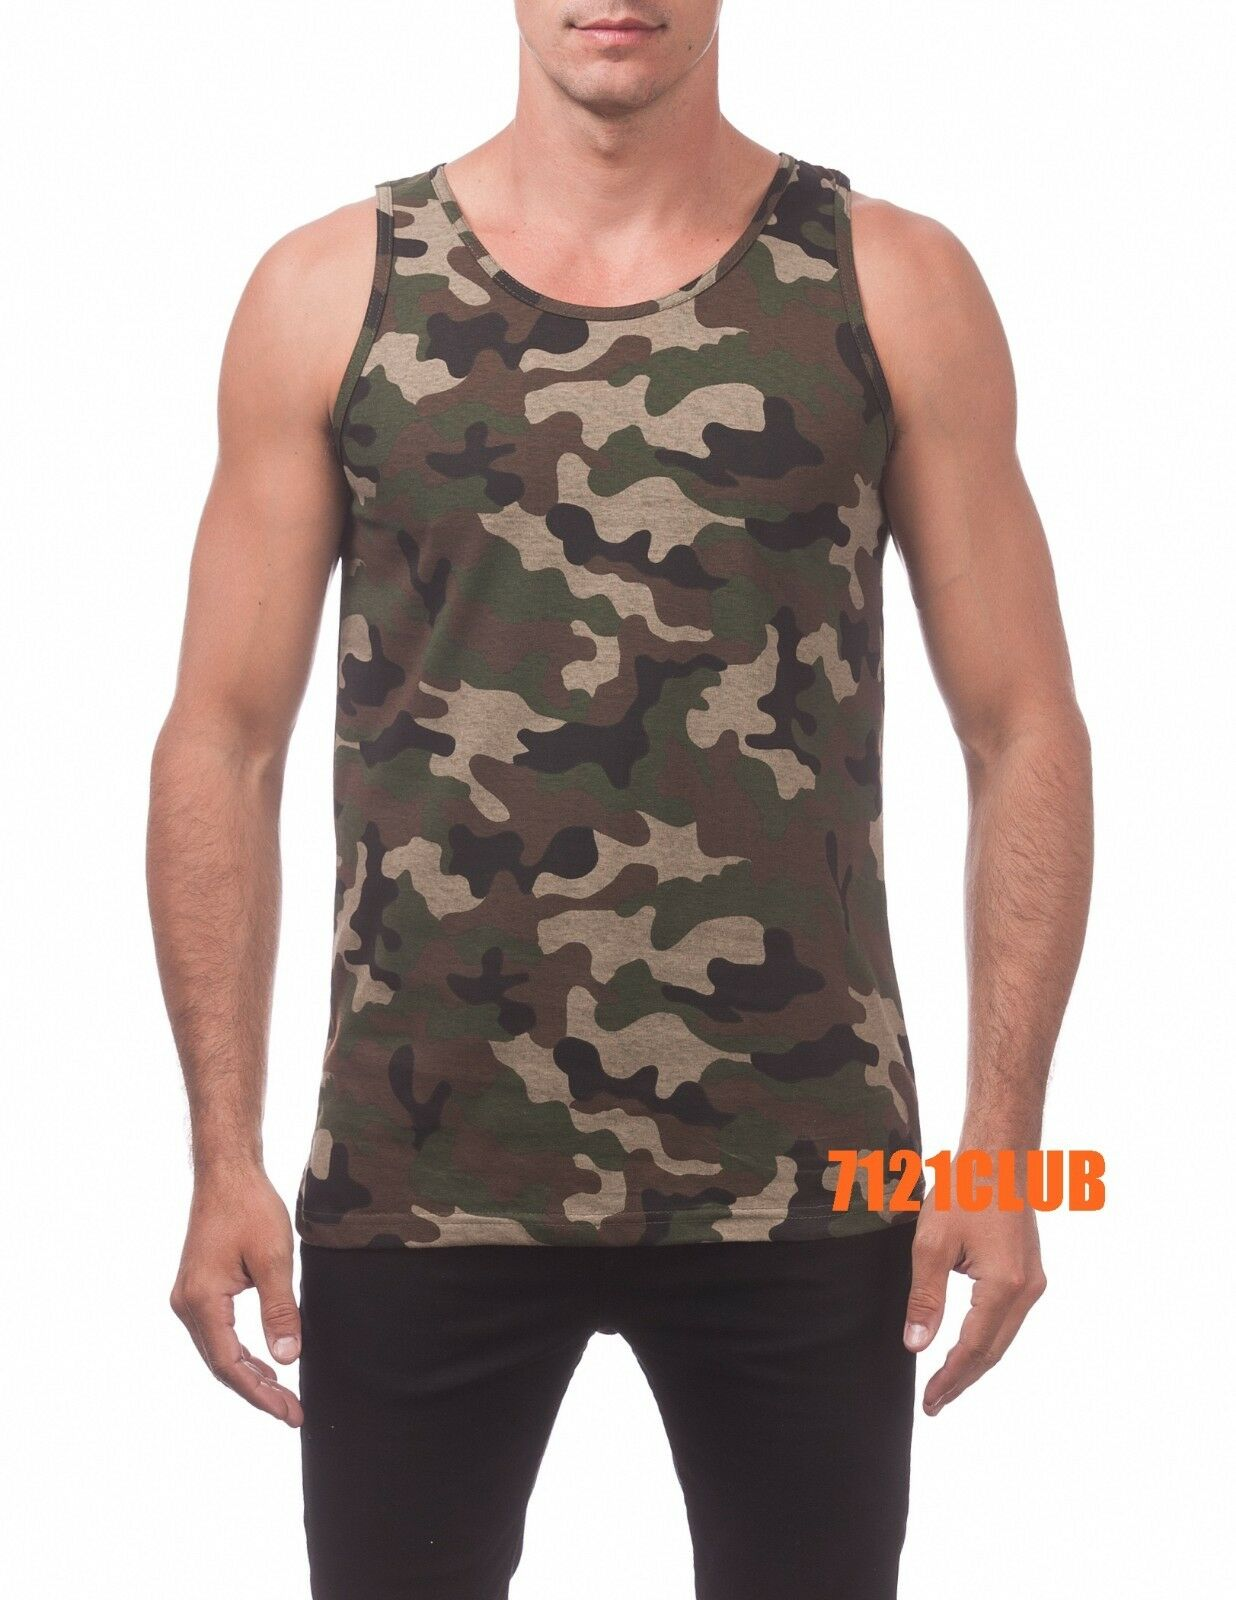 Men/'s S-Med Mossy Oak Camo Camouflage Hunting Sleeveless Muscle Tank Top Shirt